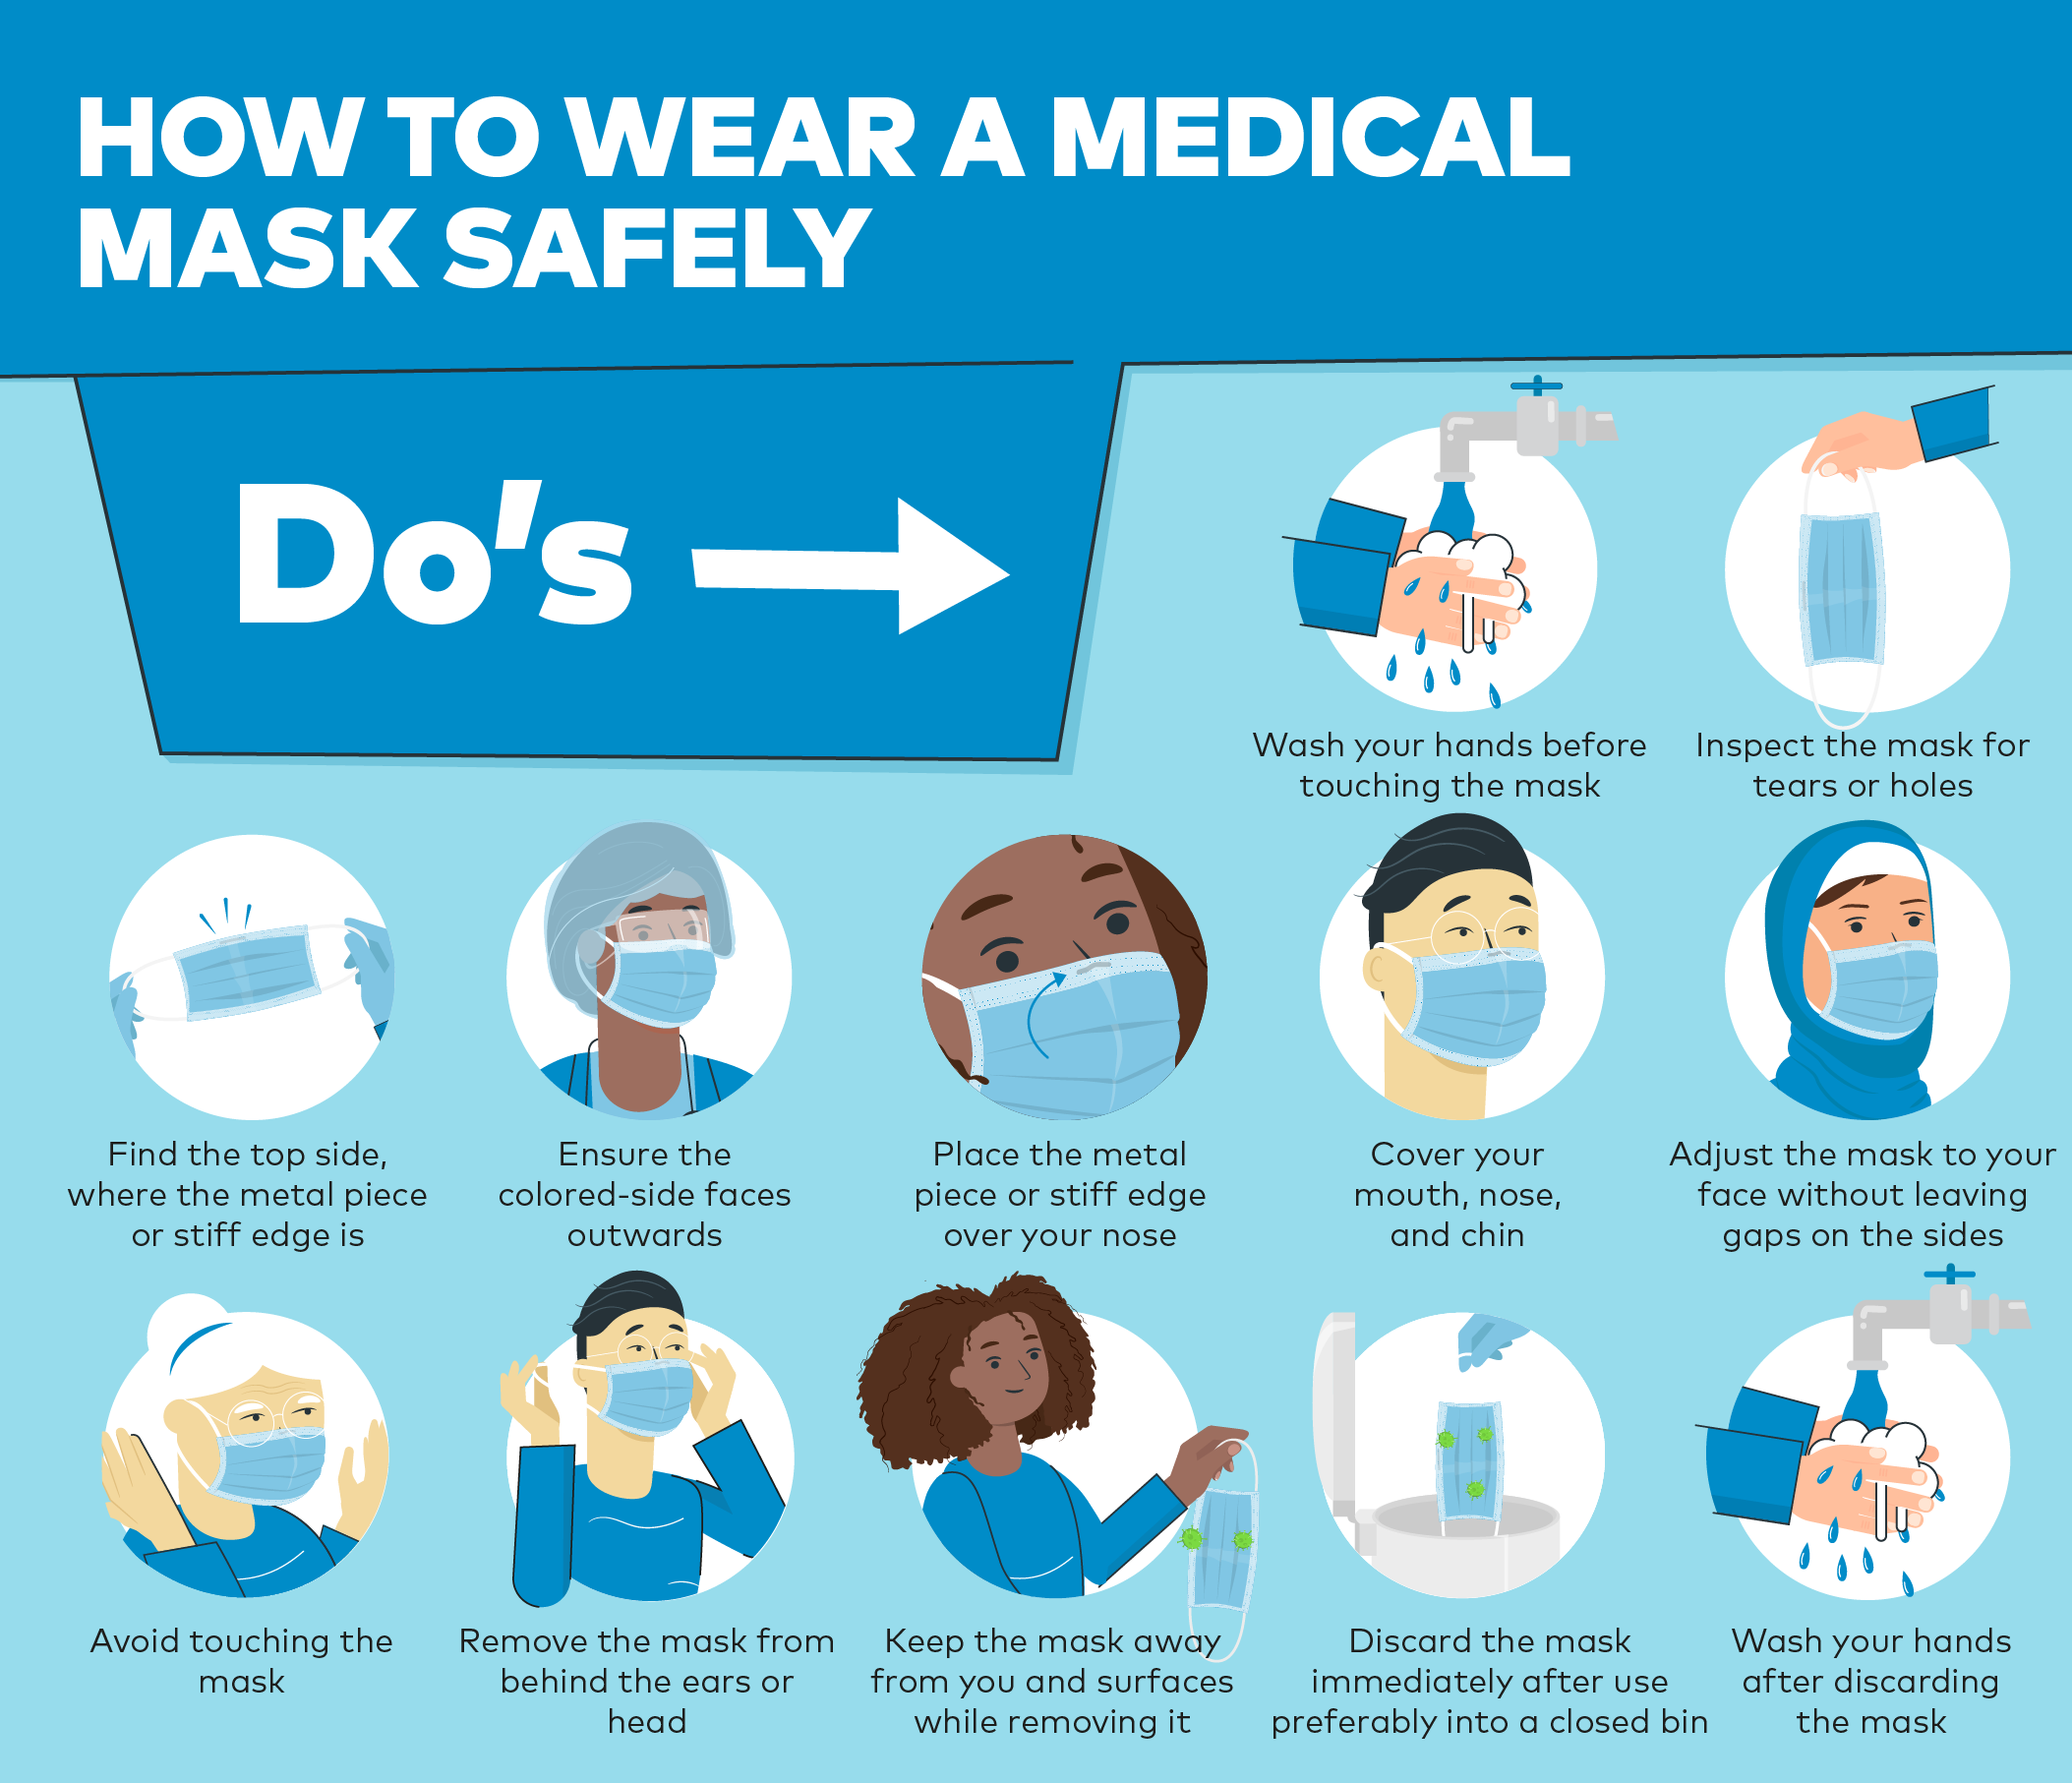 How to wear a medical mask safely